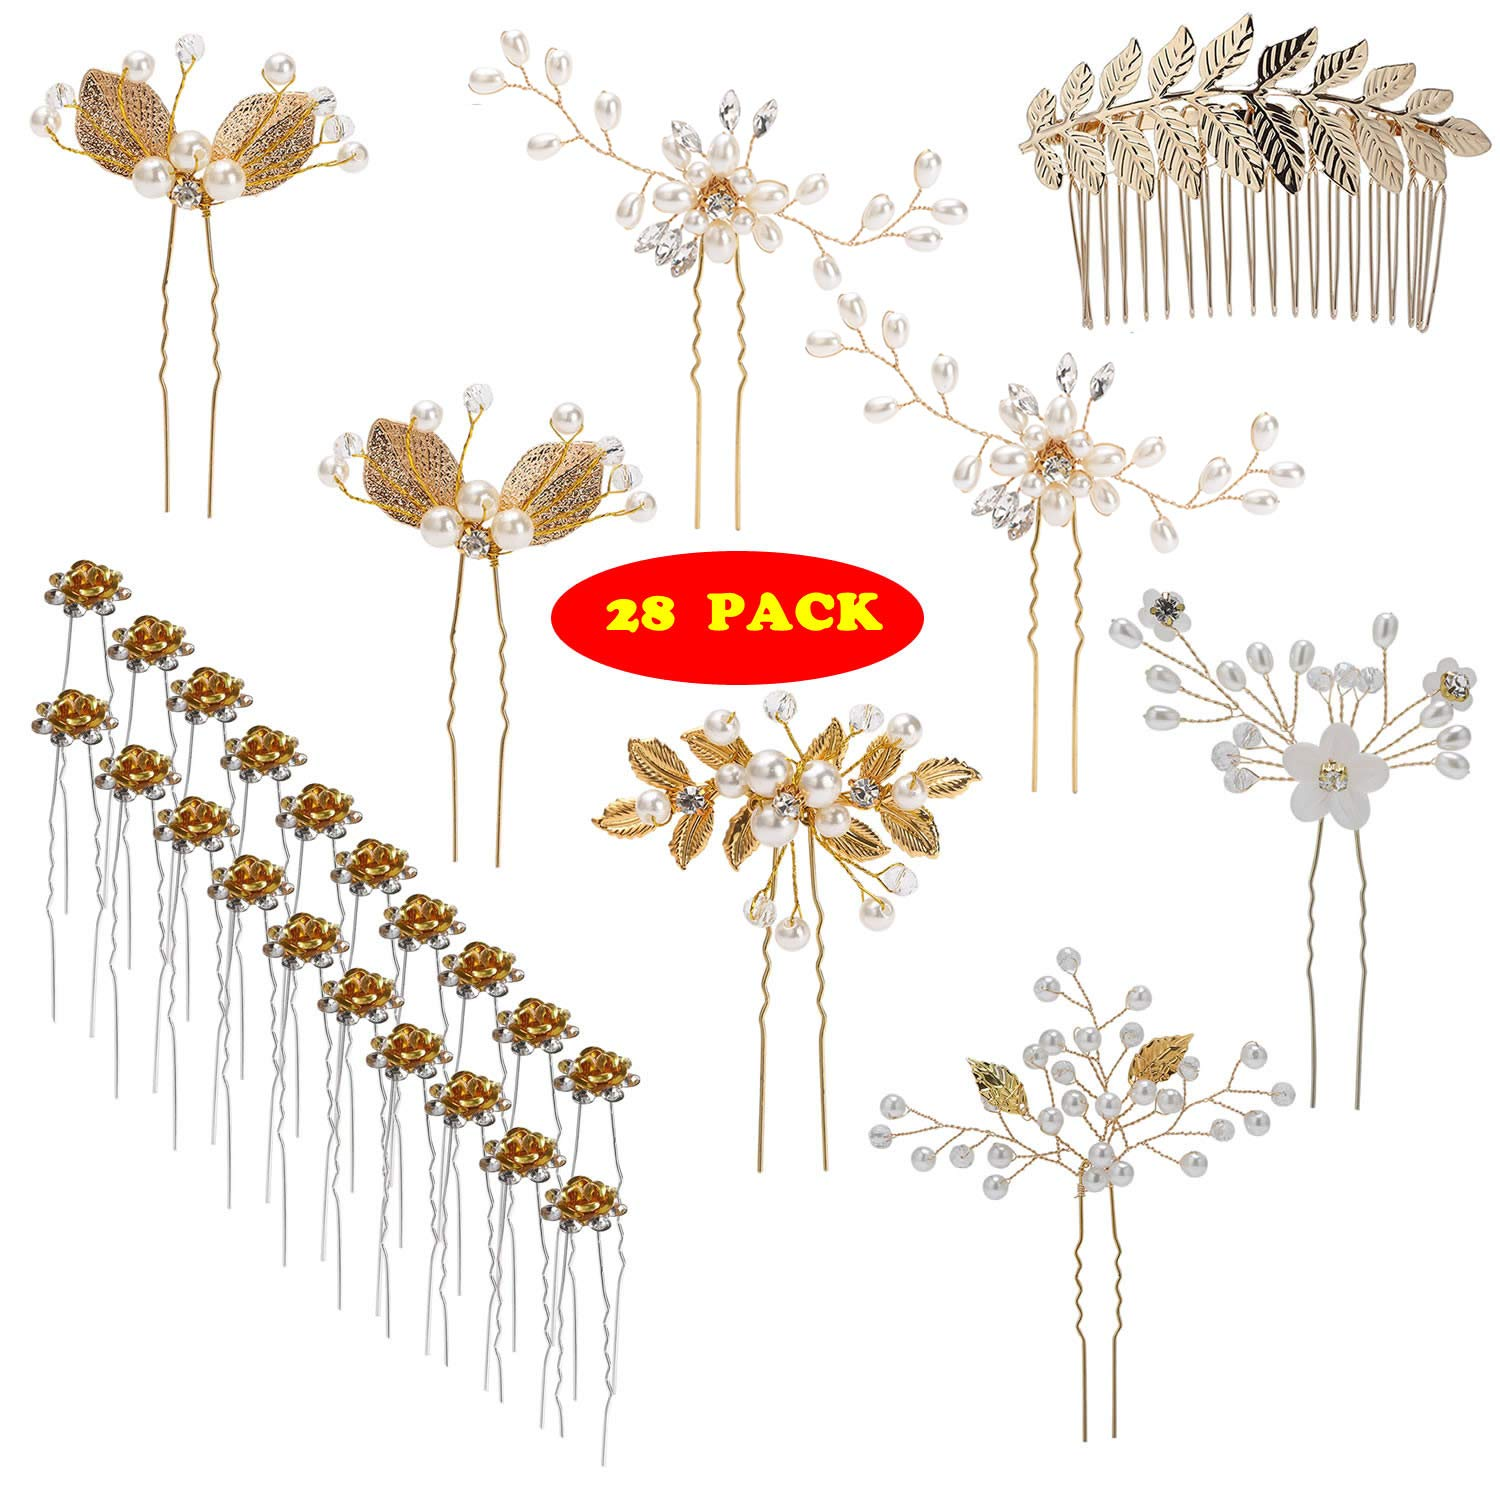 inSowni 28 Pack Wedding Bridal Hair Side Combs+U Shaped Hair Pins Clips Pieces Accessories Rhinestone Pearl Flower Gold for Women Girls Bridsmaids by inSowni